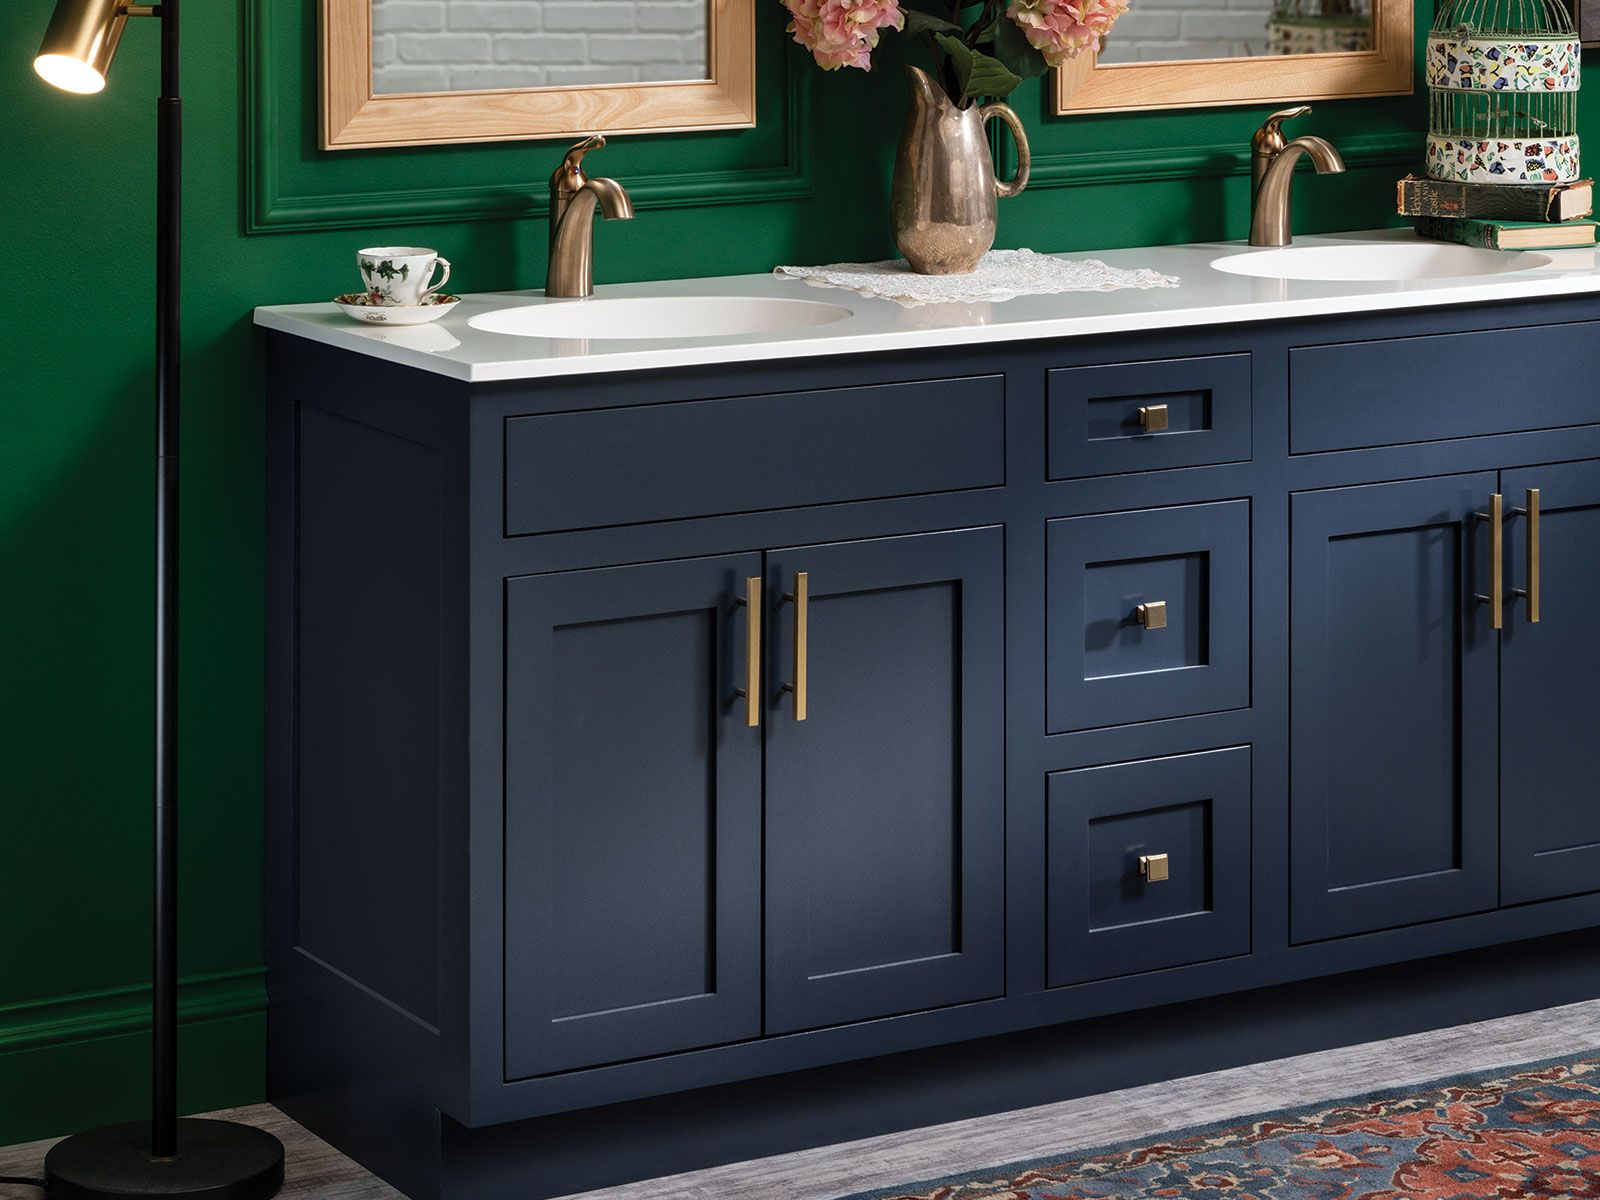 23 The Ultimate Guide To Buying A Bathroom Vanity Bertch